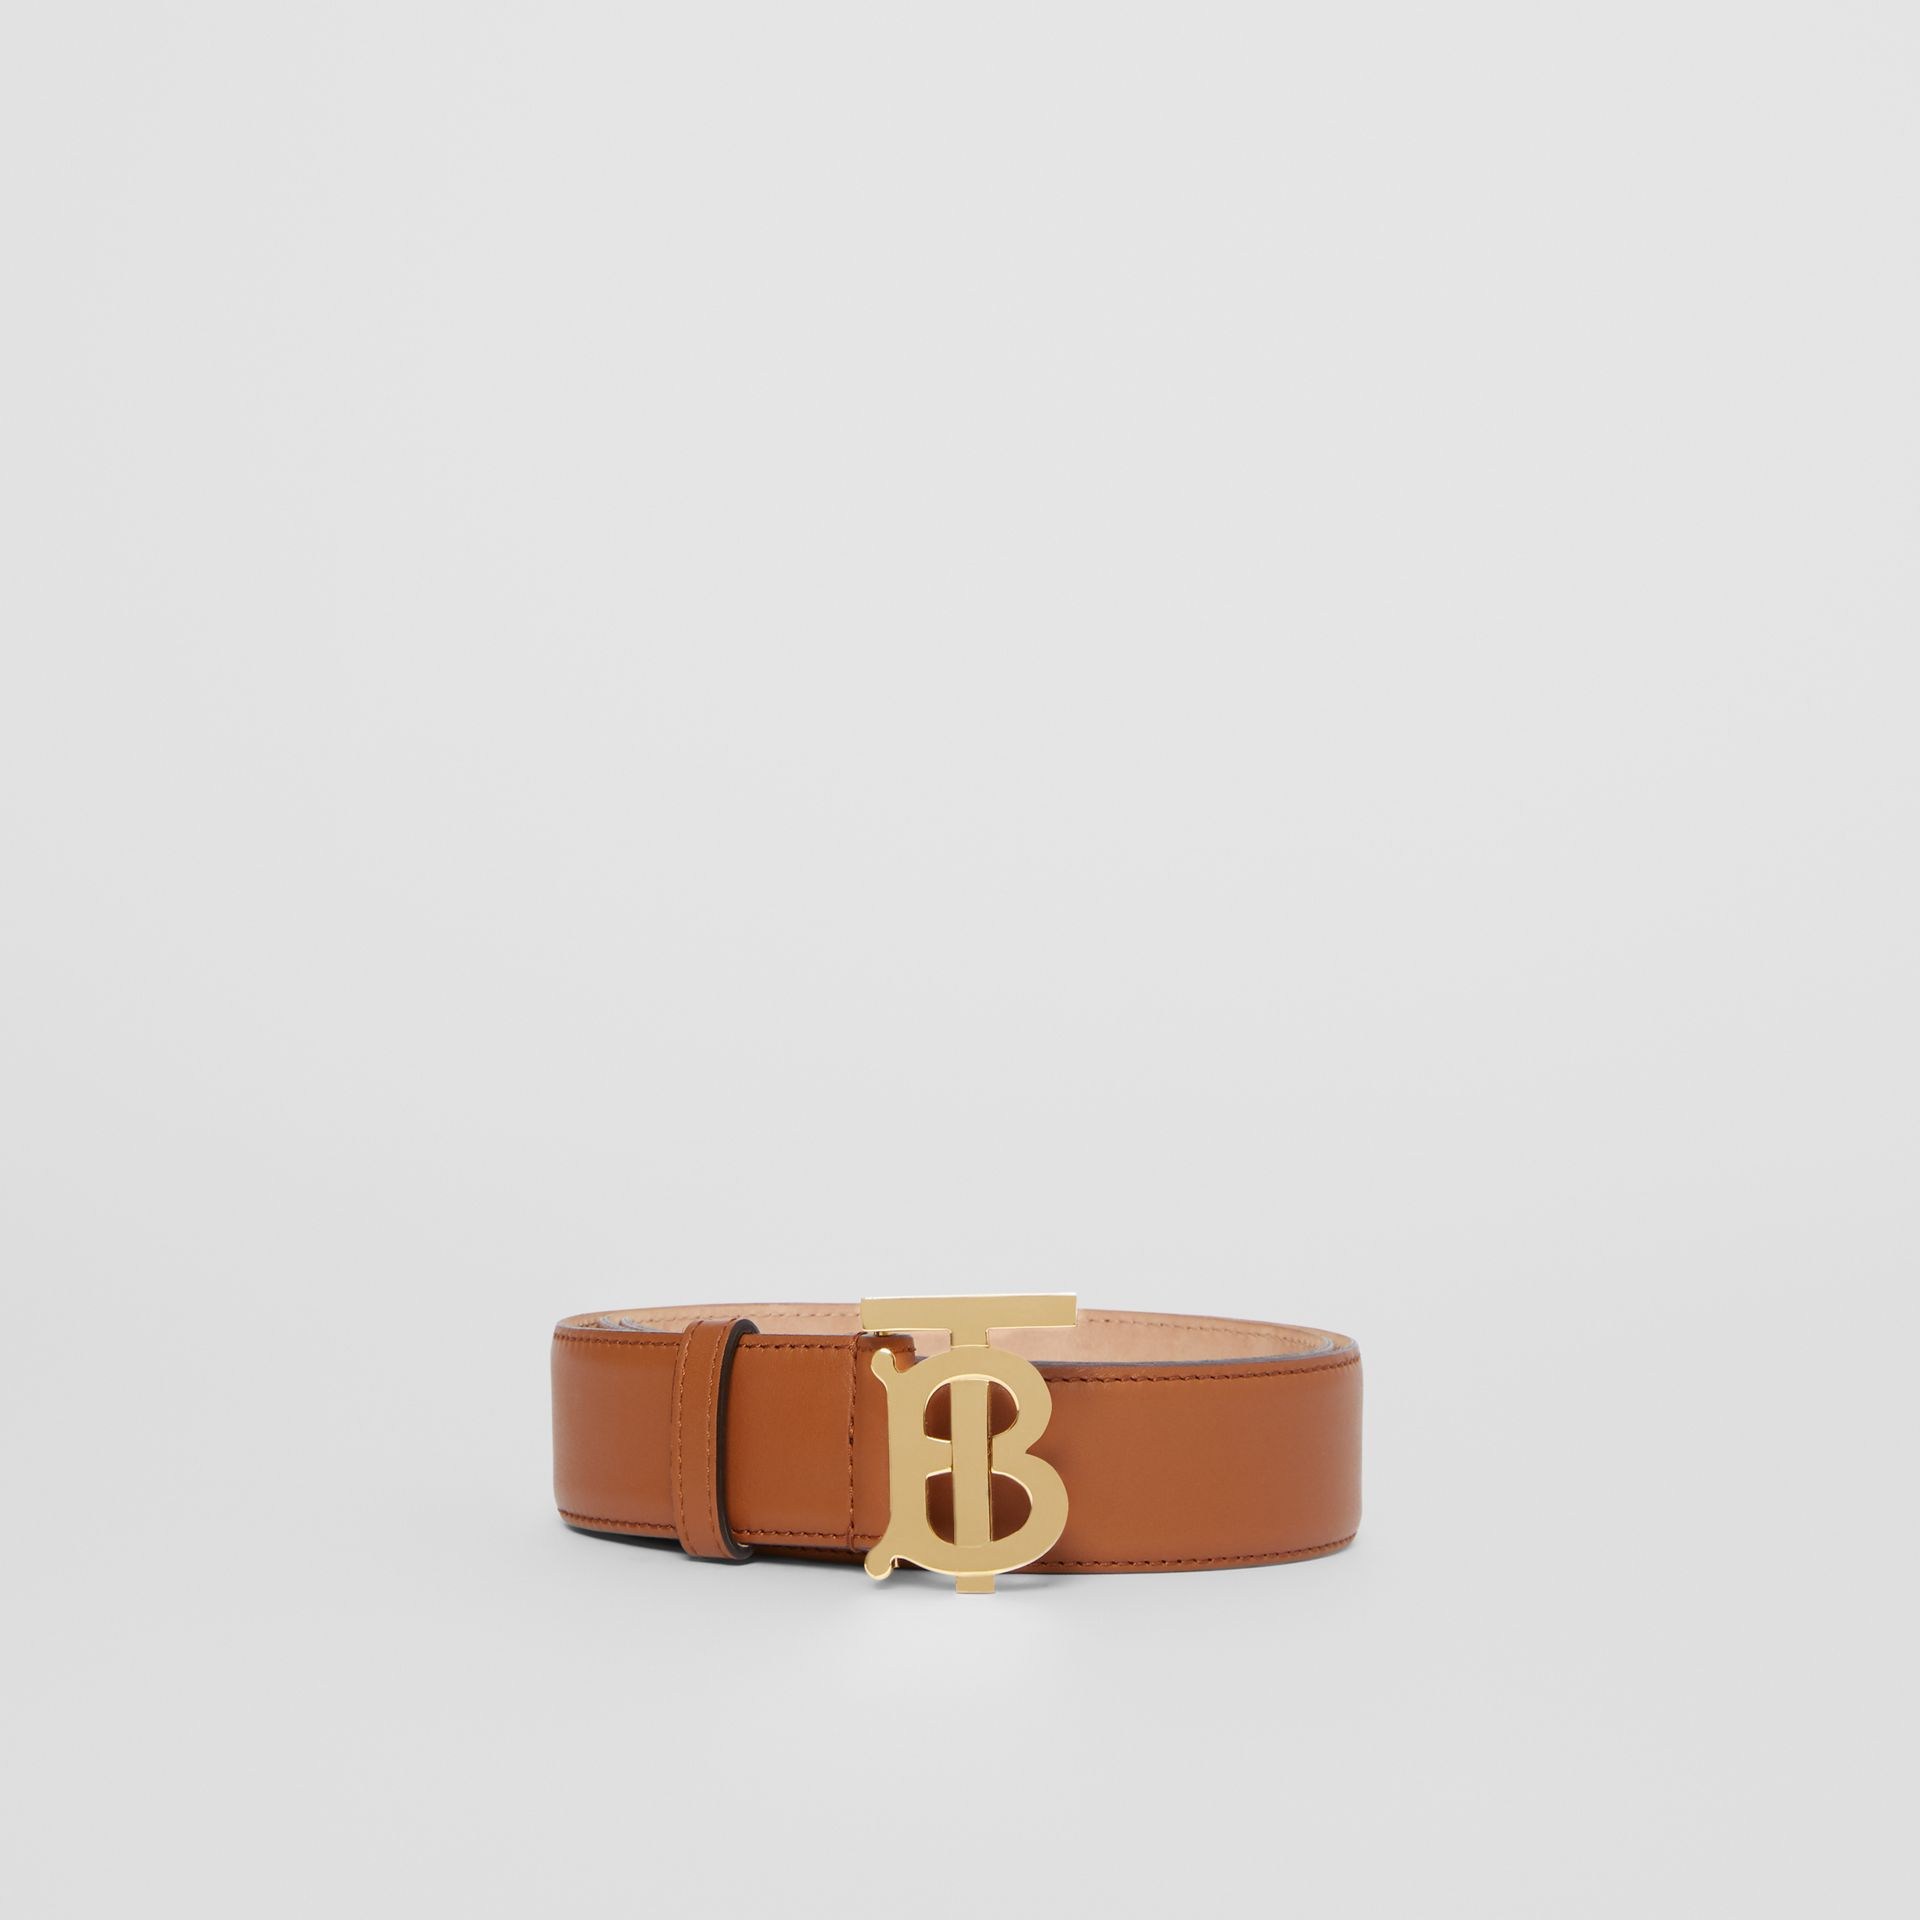 Monogram Motif Leather Belt in Tan - Women | Burberry United States - gallery image 3